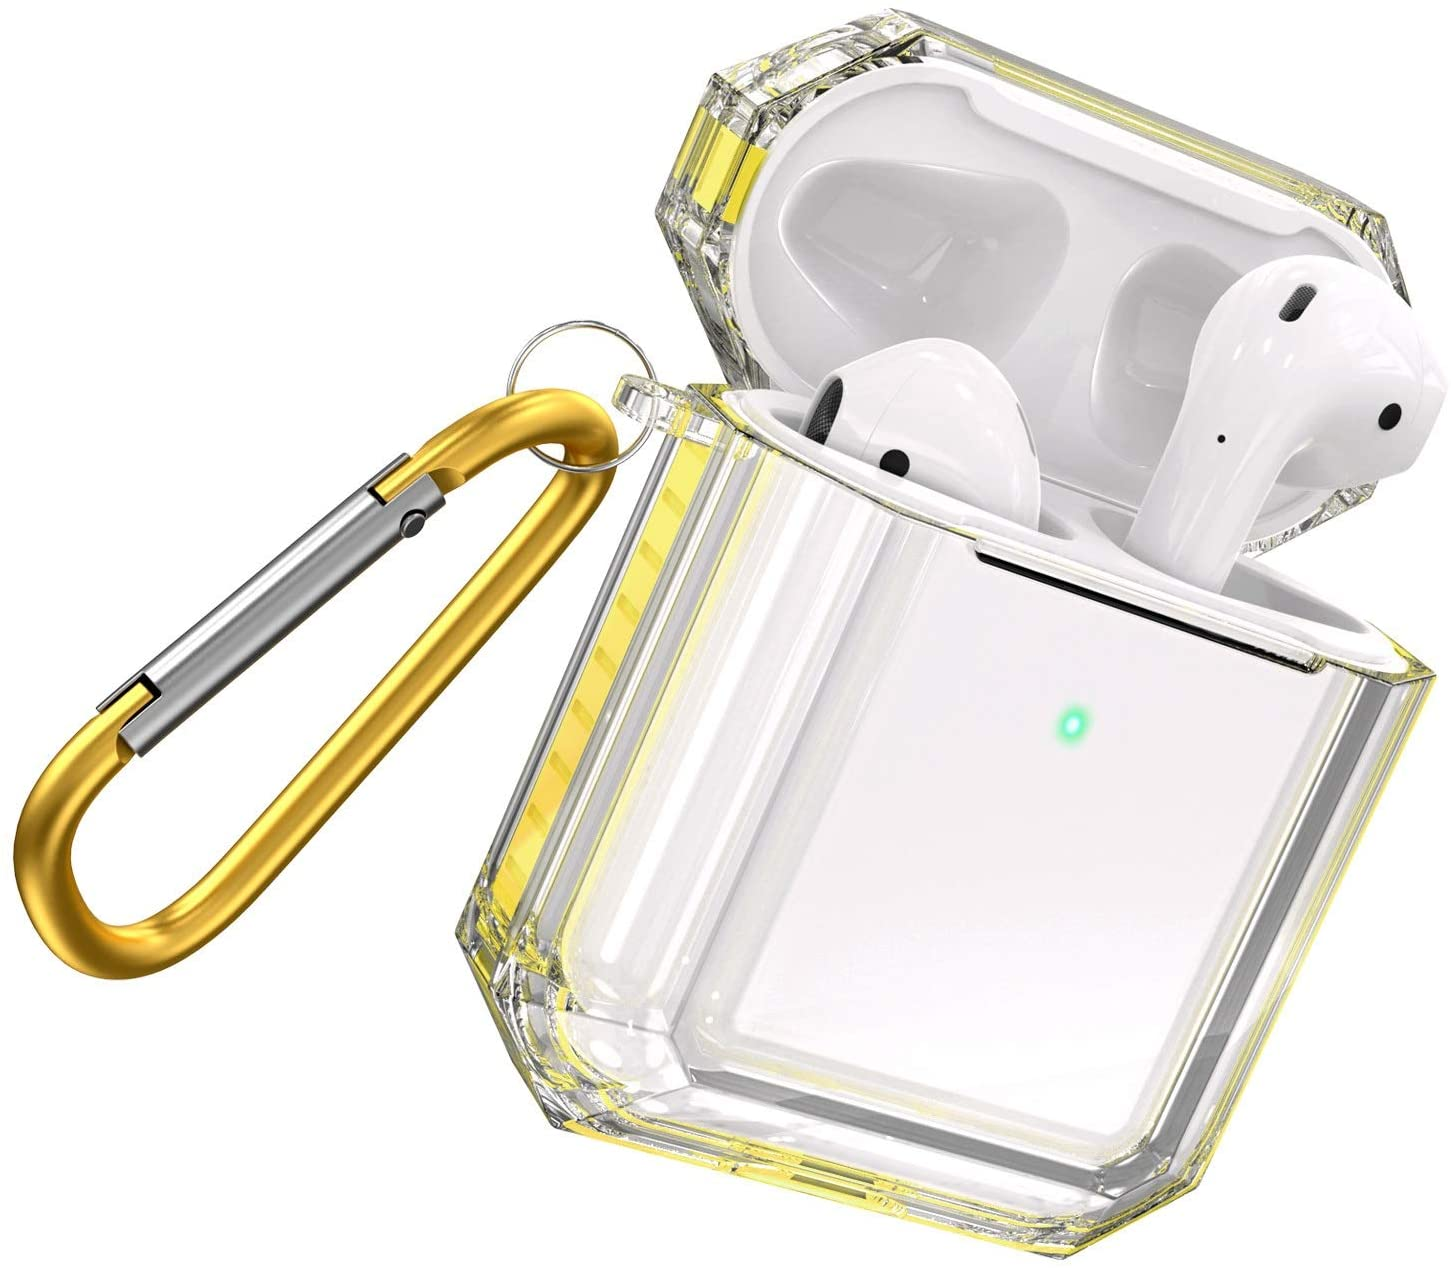 Fitlink Case for AirPods 2&1, Anti-Scratch Shock-Absorption Soft TPU Crystal Clear Case Cover for Apple AirPods 2&1 in Charging Case with Carabiner (AirPods with Wireless Charging Case, Yellow)